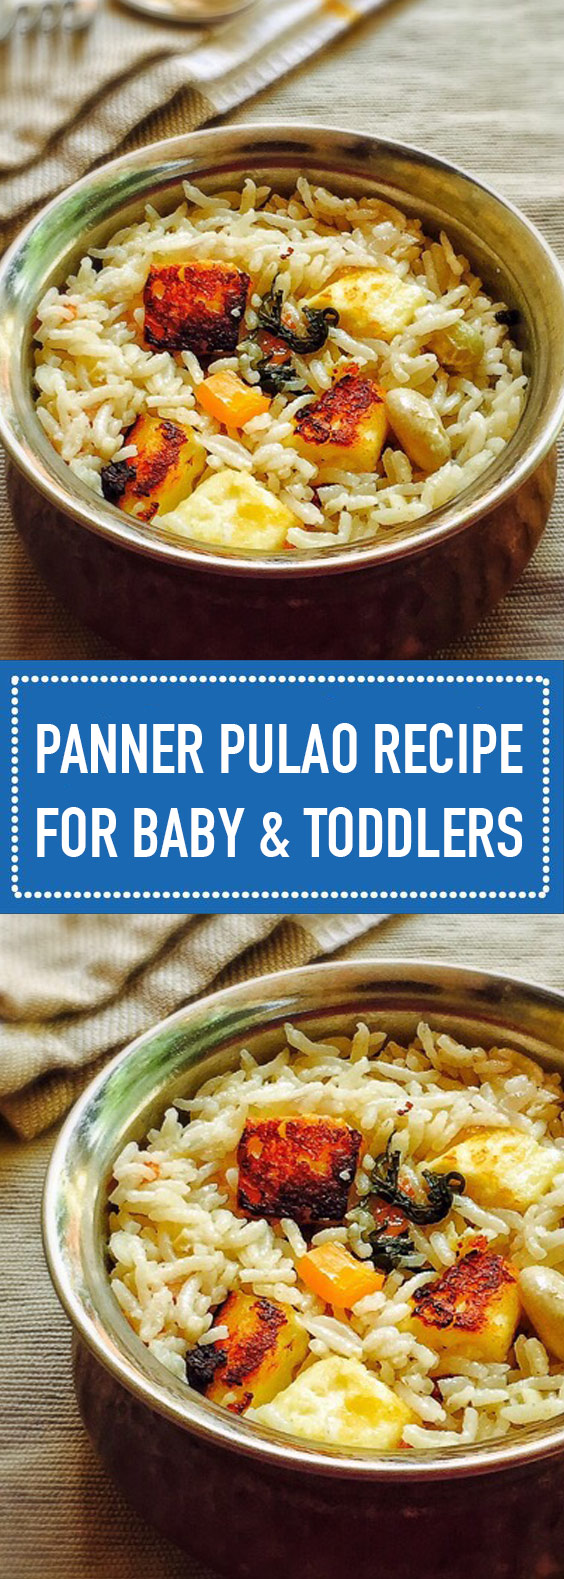 Paneer Pulao Recipe for Baby